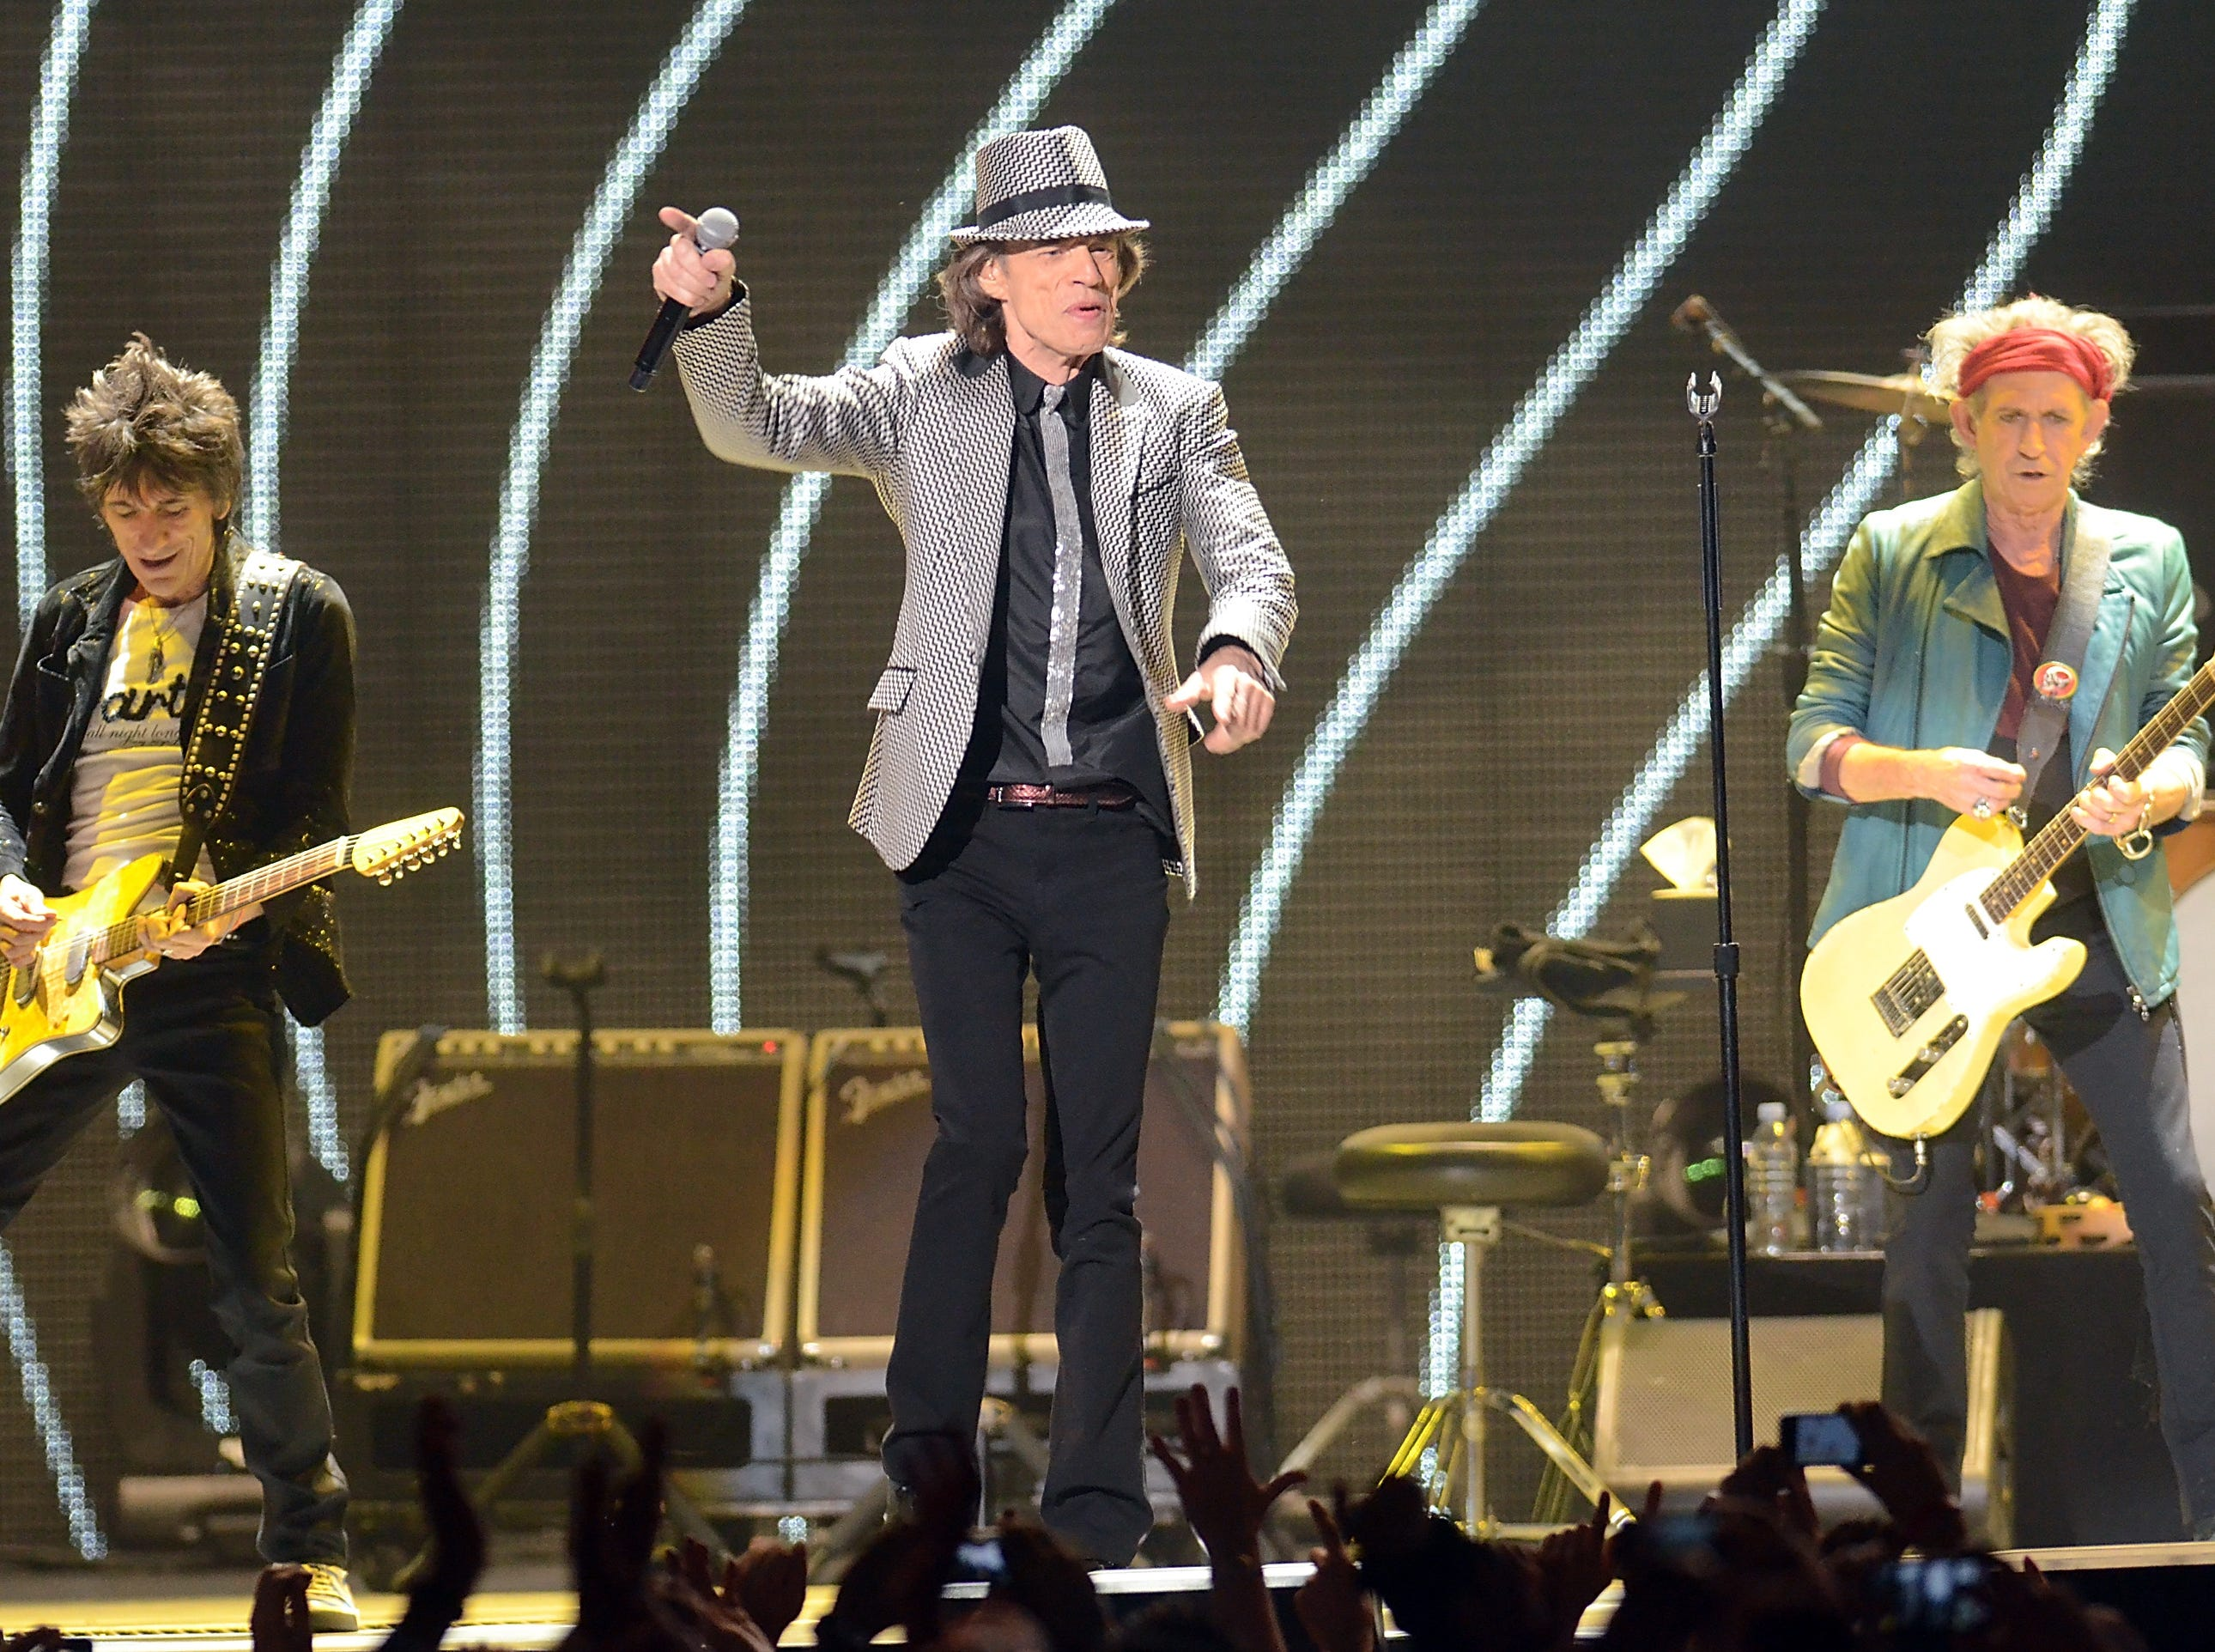 In this Saturday, Dec. 15, 2012 file photo, singer Mick Jagger, center, guitarists Ronnie Wood, left, and Keith Richards, of The Rolling Stones perform live at the Prudential Center in Newark, N.J.  (Photo by Evan Agostini/Invision/AP, File) ORG XMIT: CAENT418